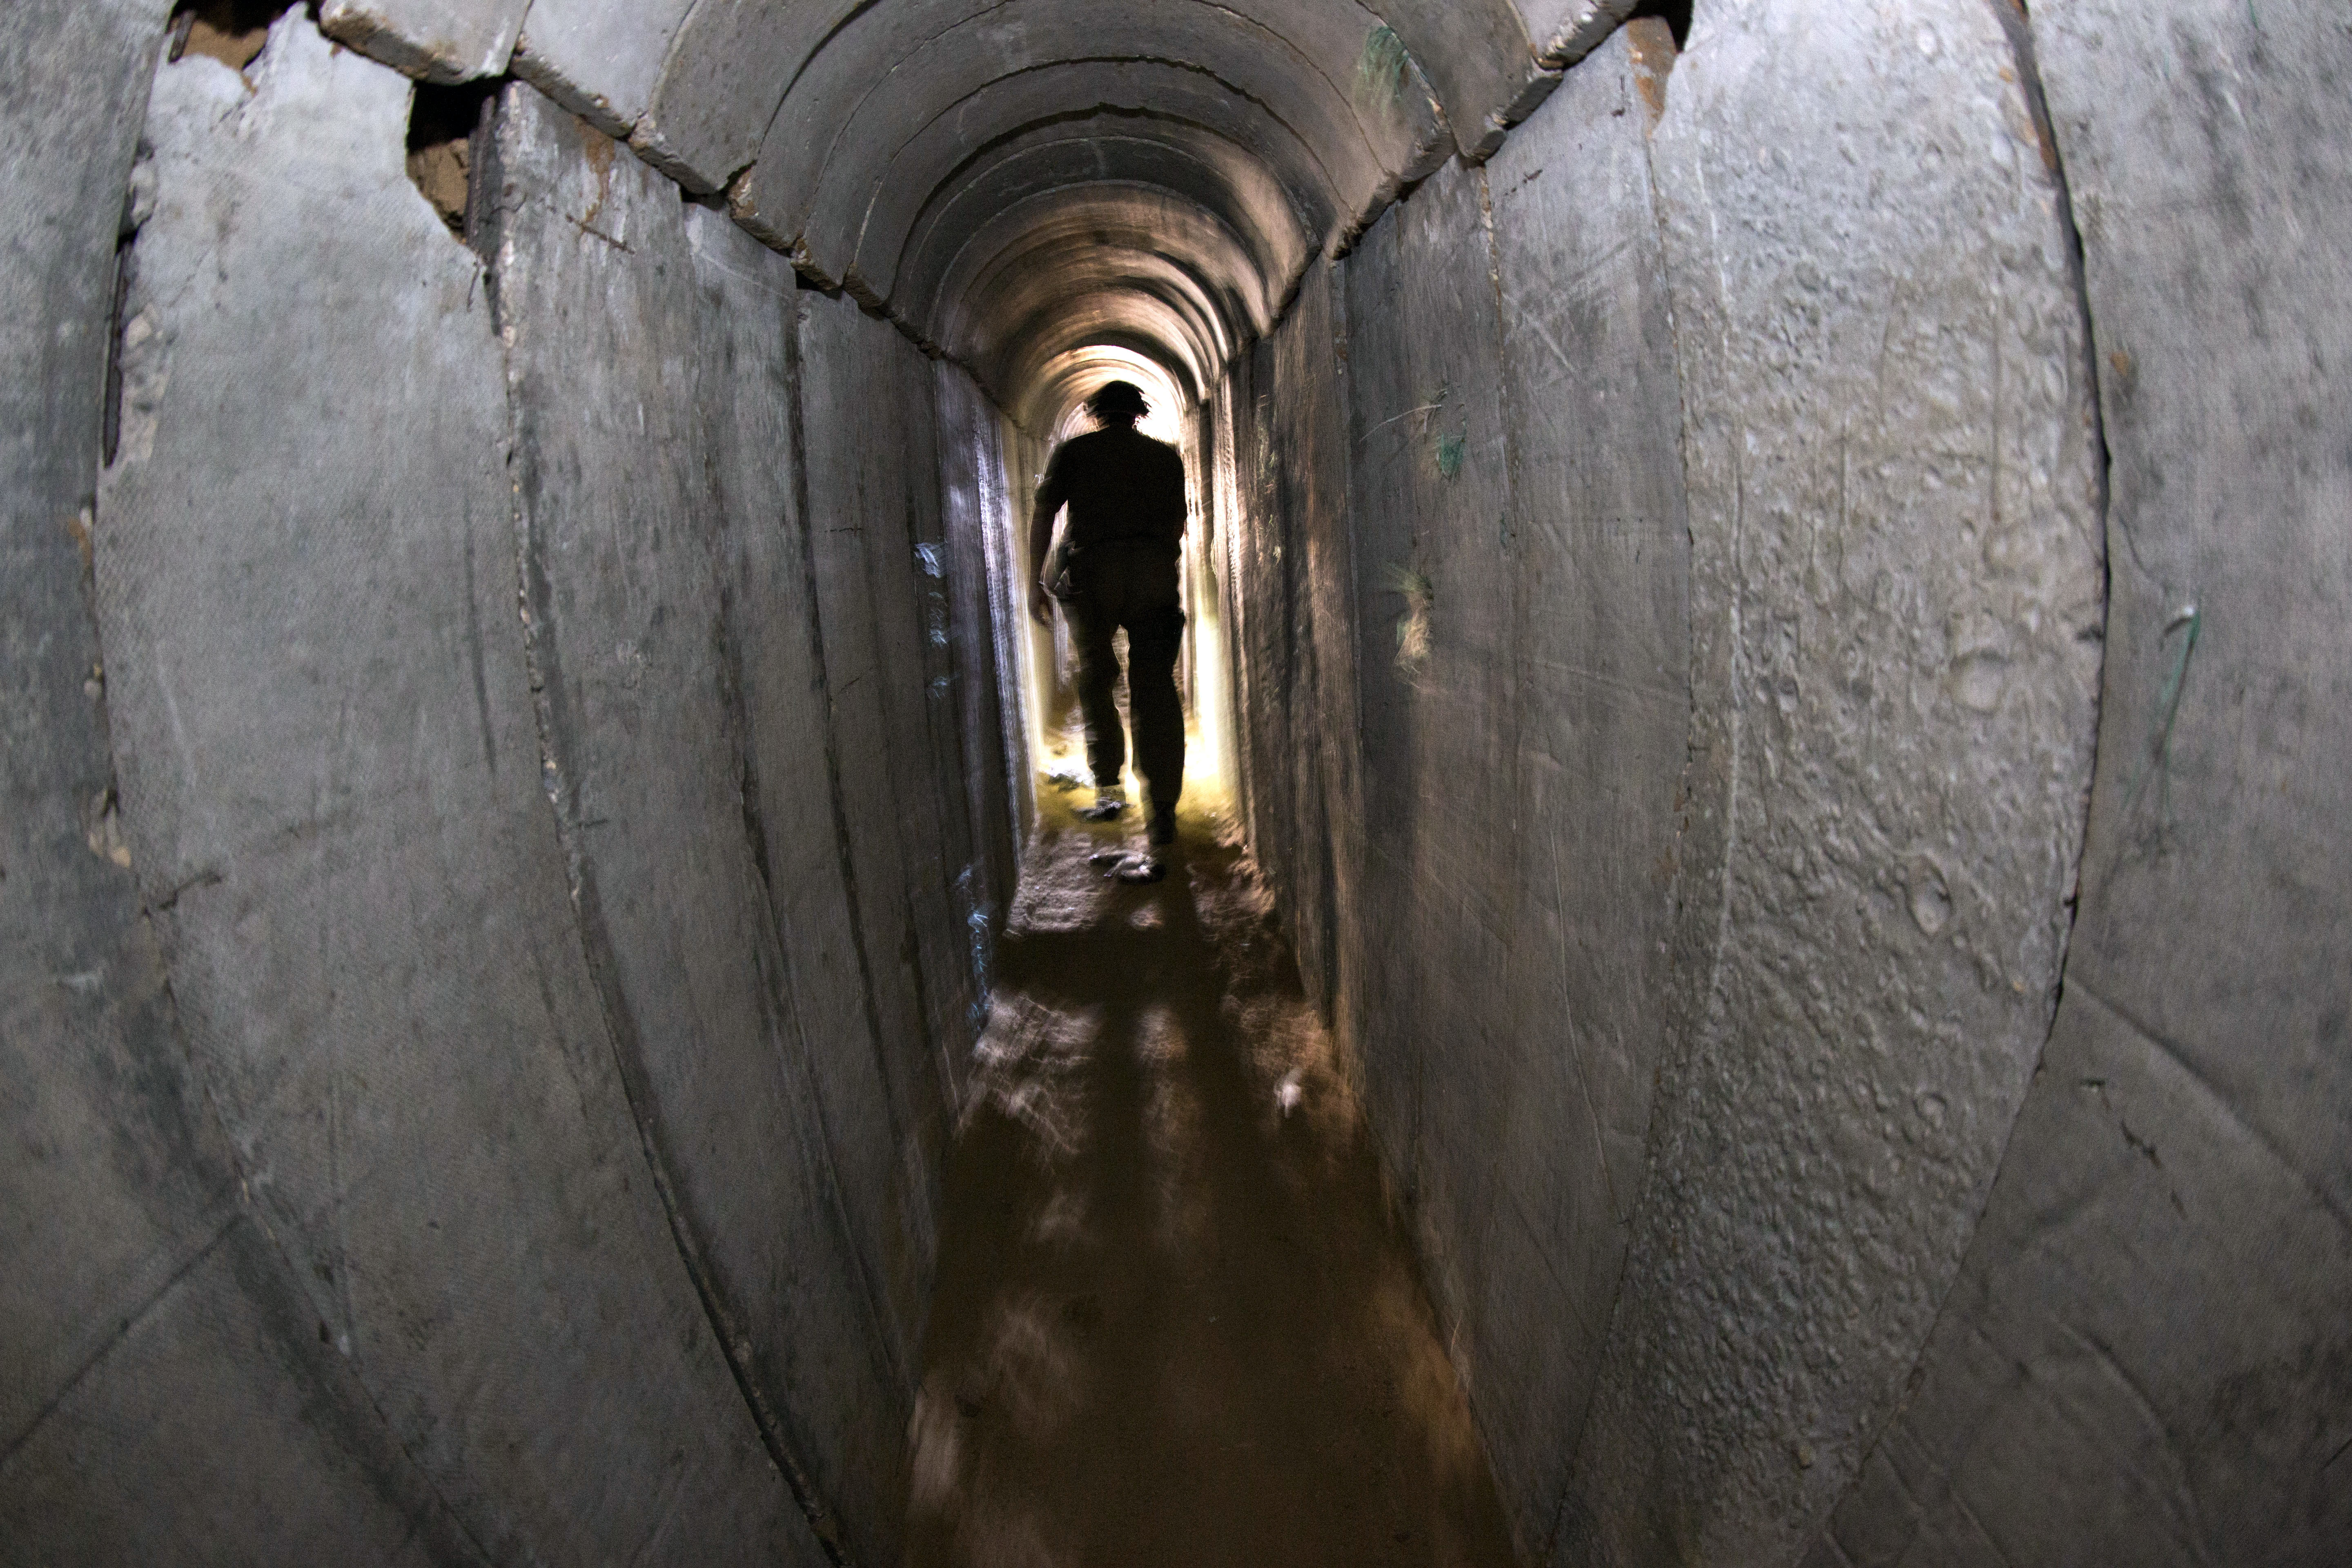 'We revived an ancient tradition': Israel's new subterranean city of the dead